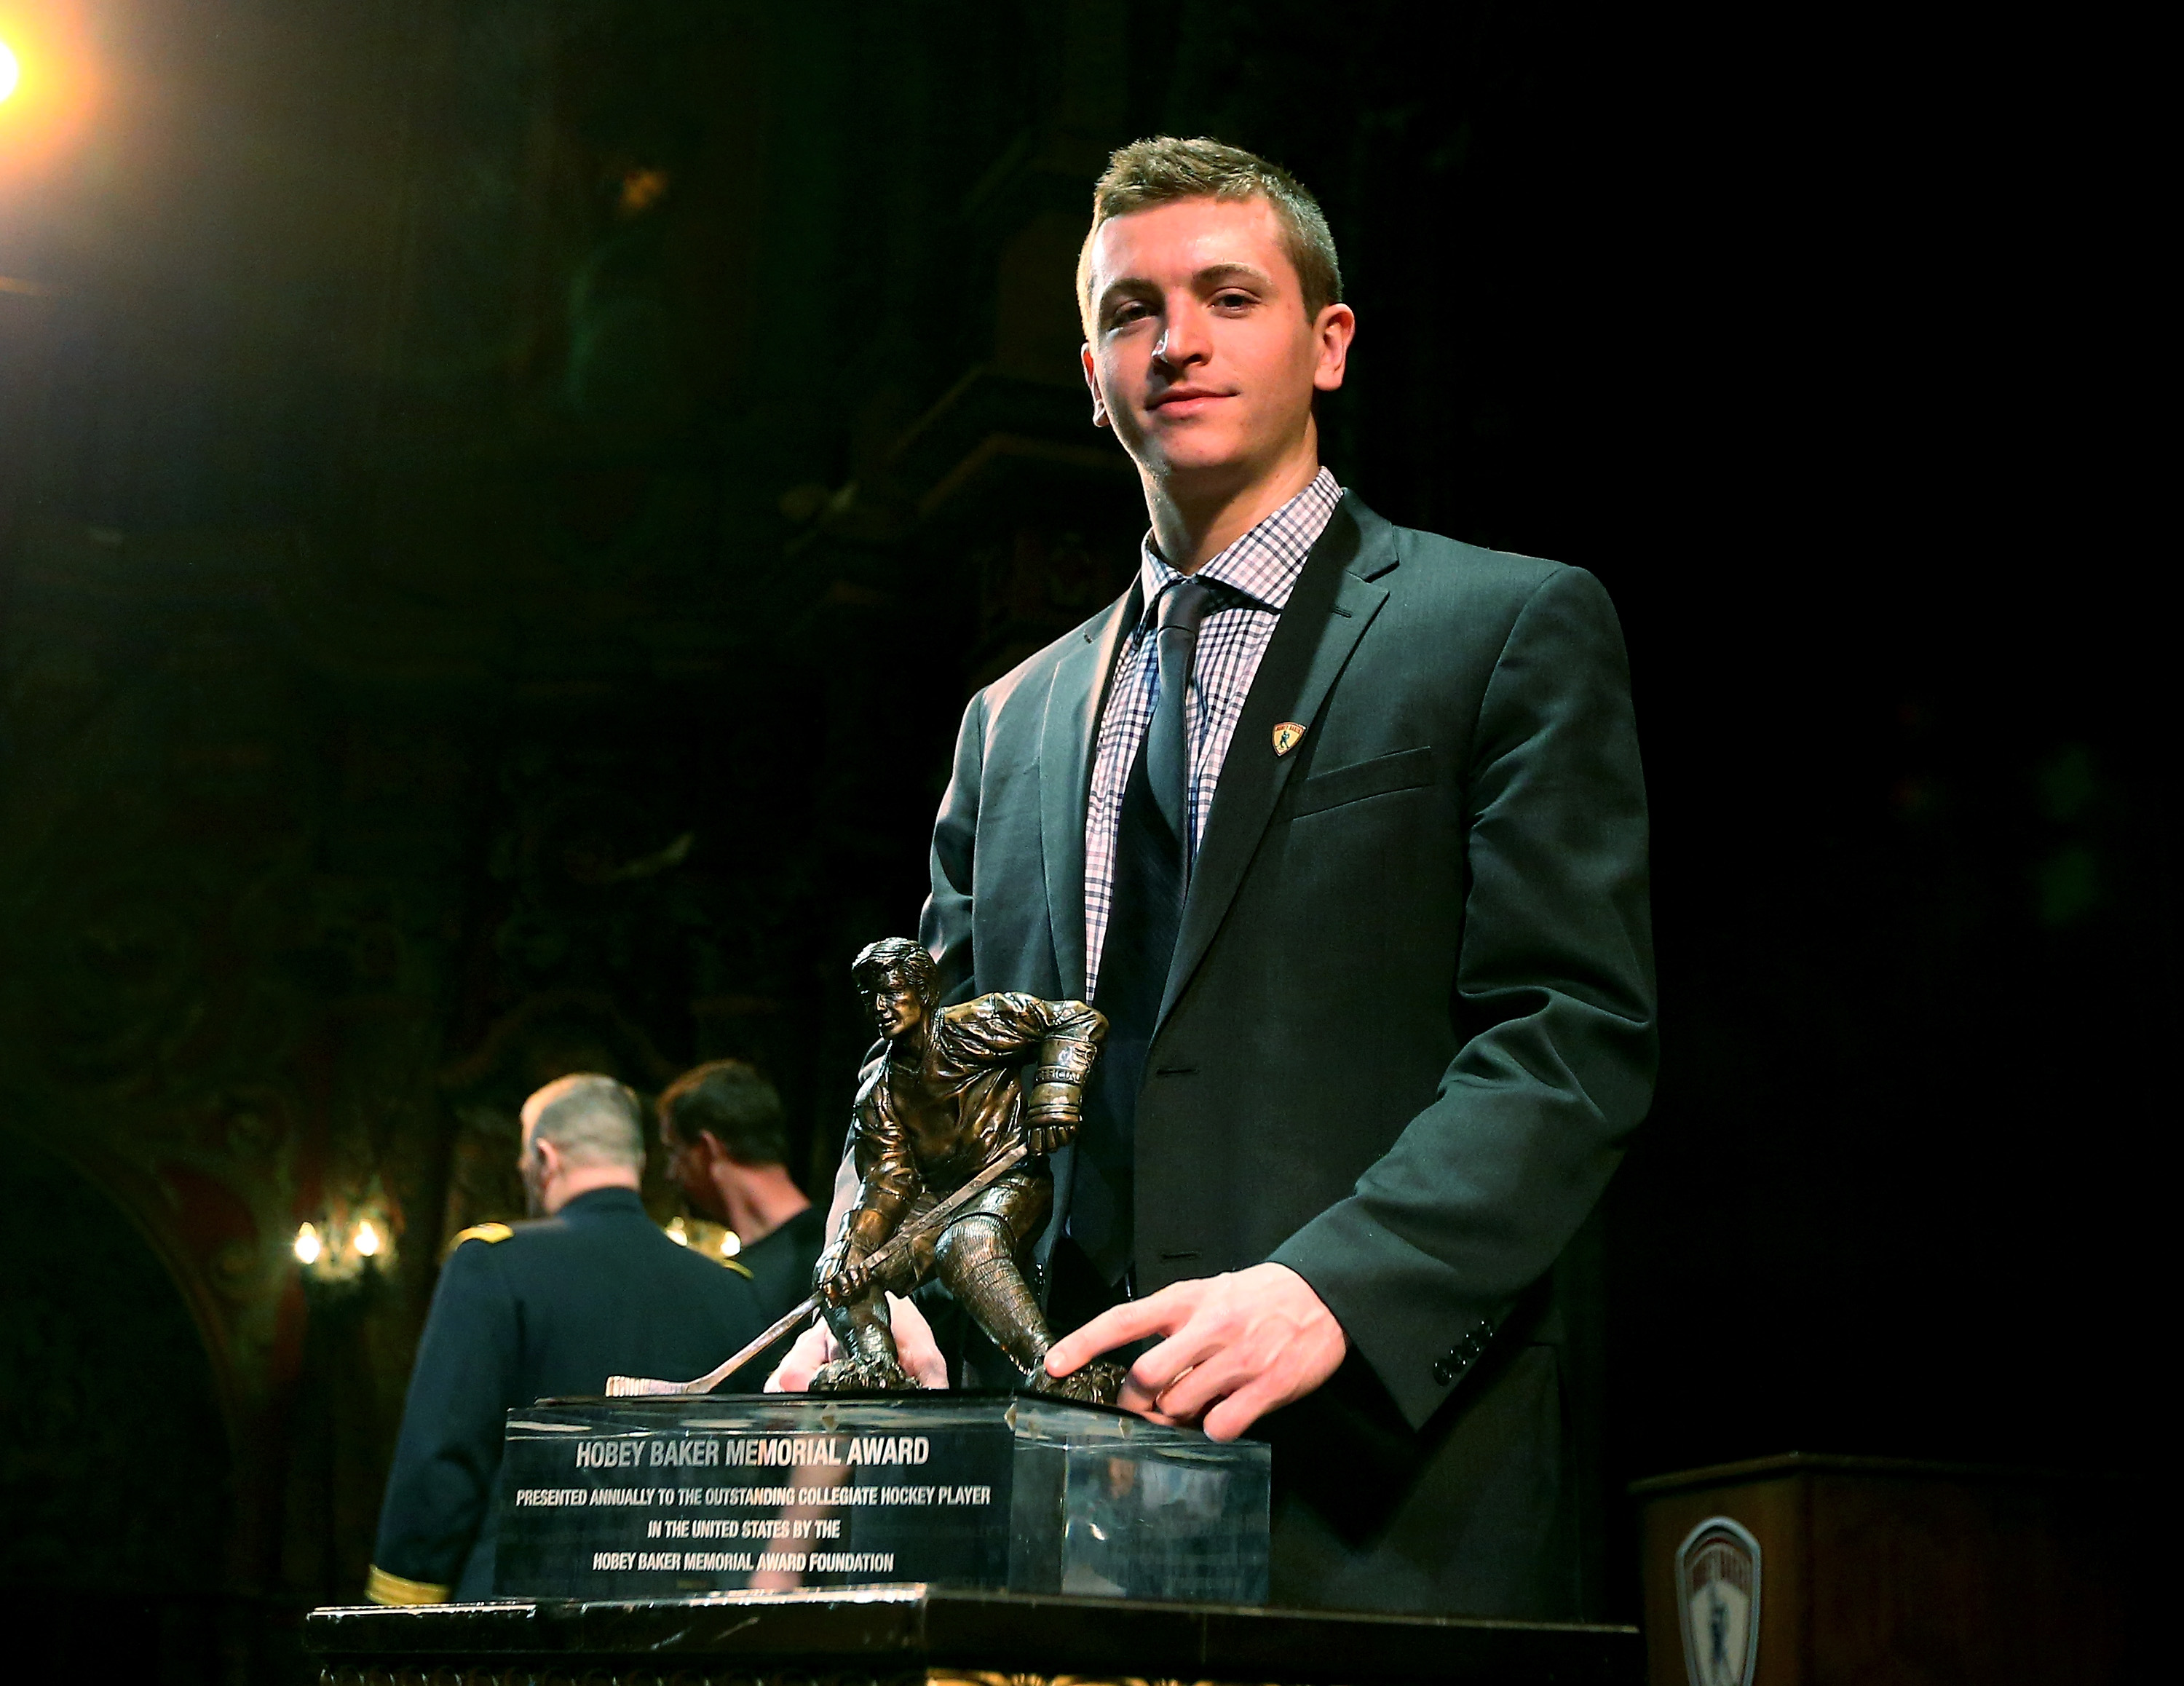 Jimmy Vesey of Harvard University poses with the Hobey Baker Award trophy after the award ceremony in April. (Getty Images)